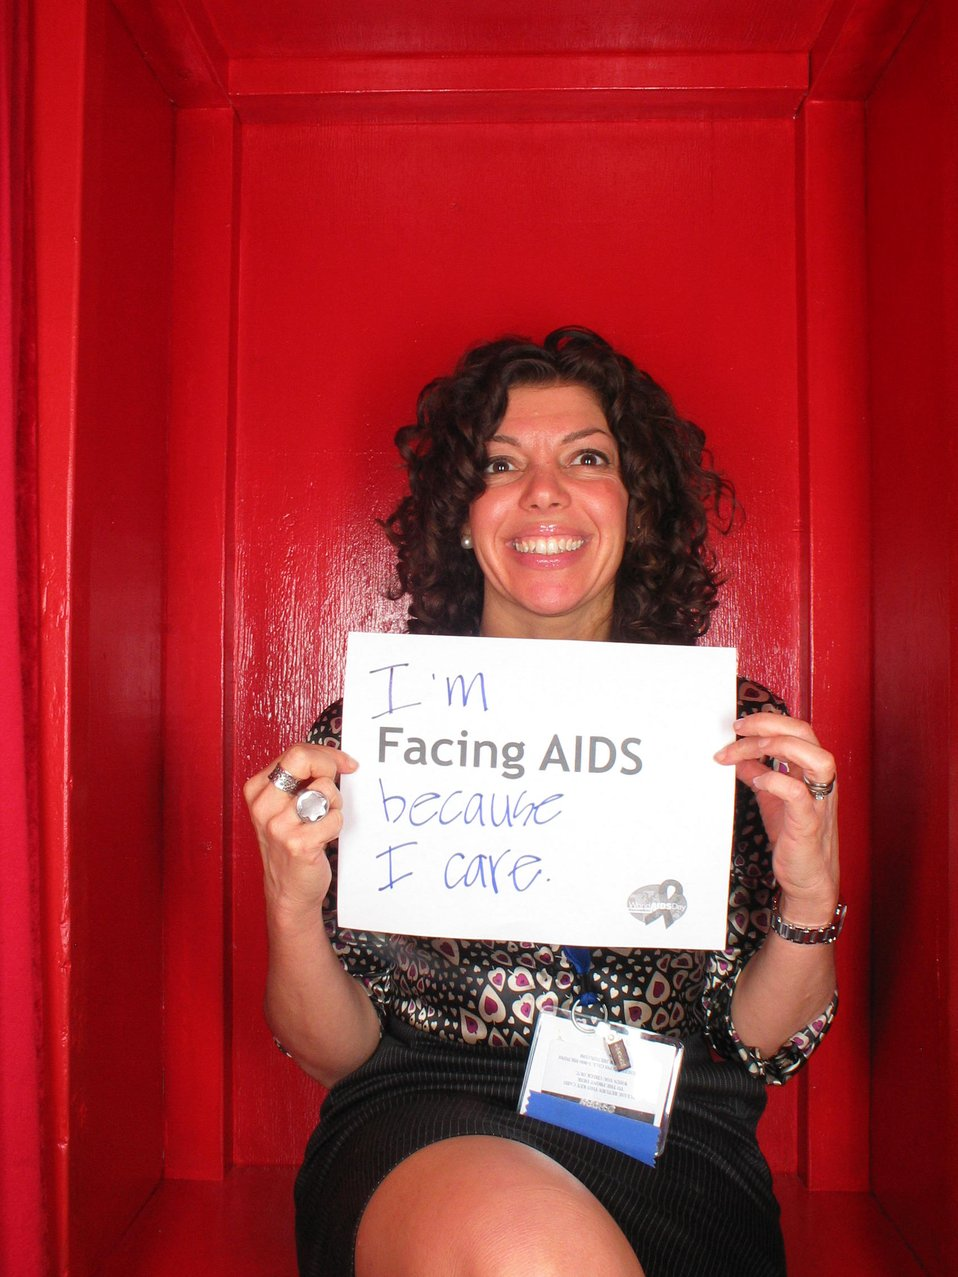 I'm Facing AIDS because I care.